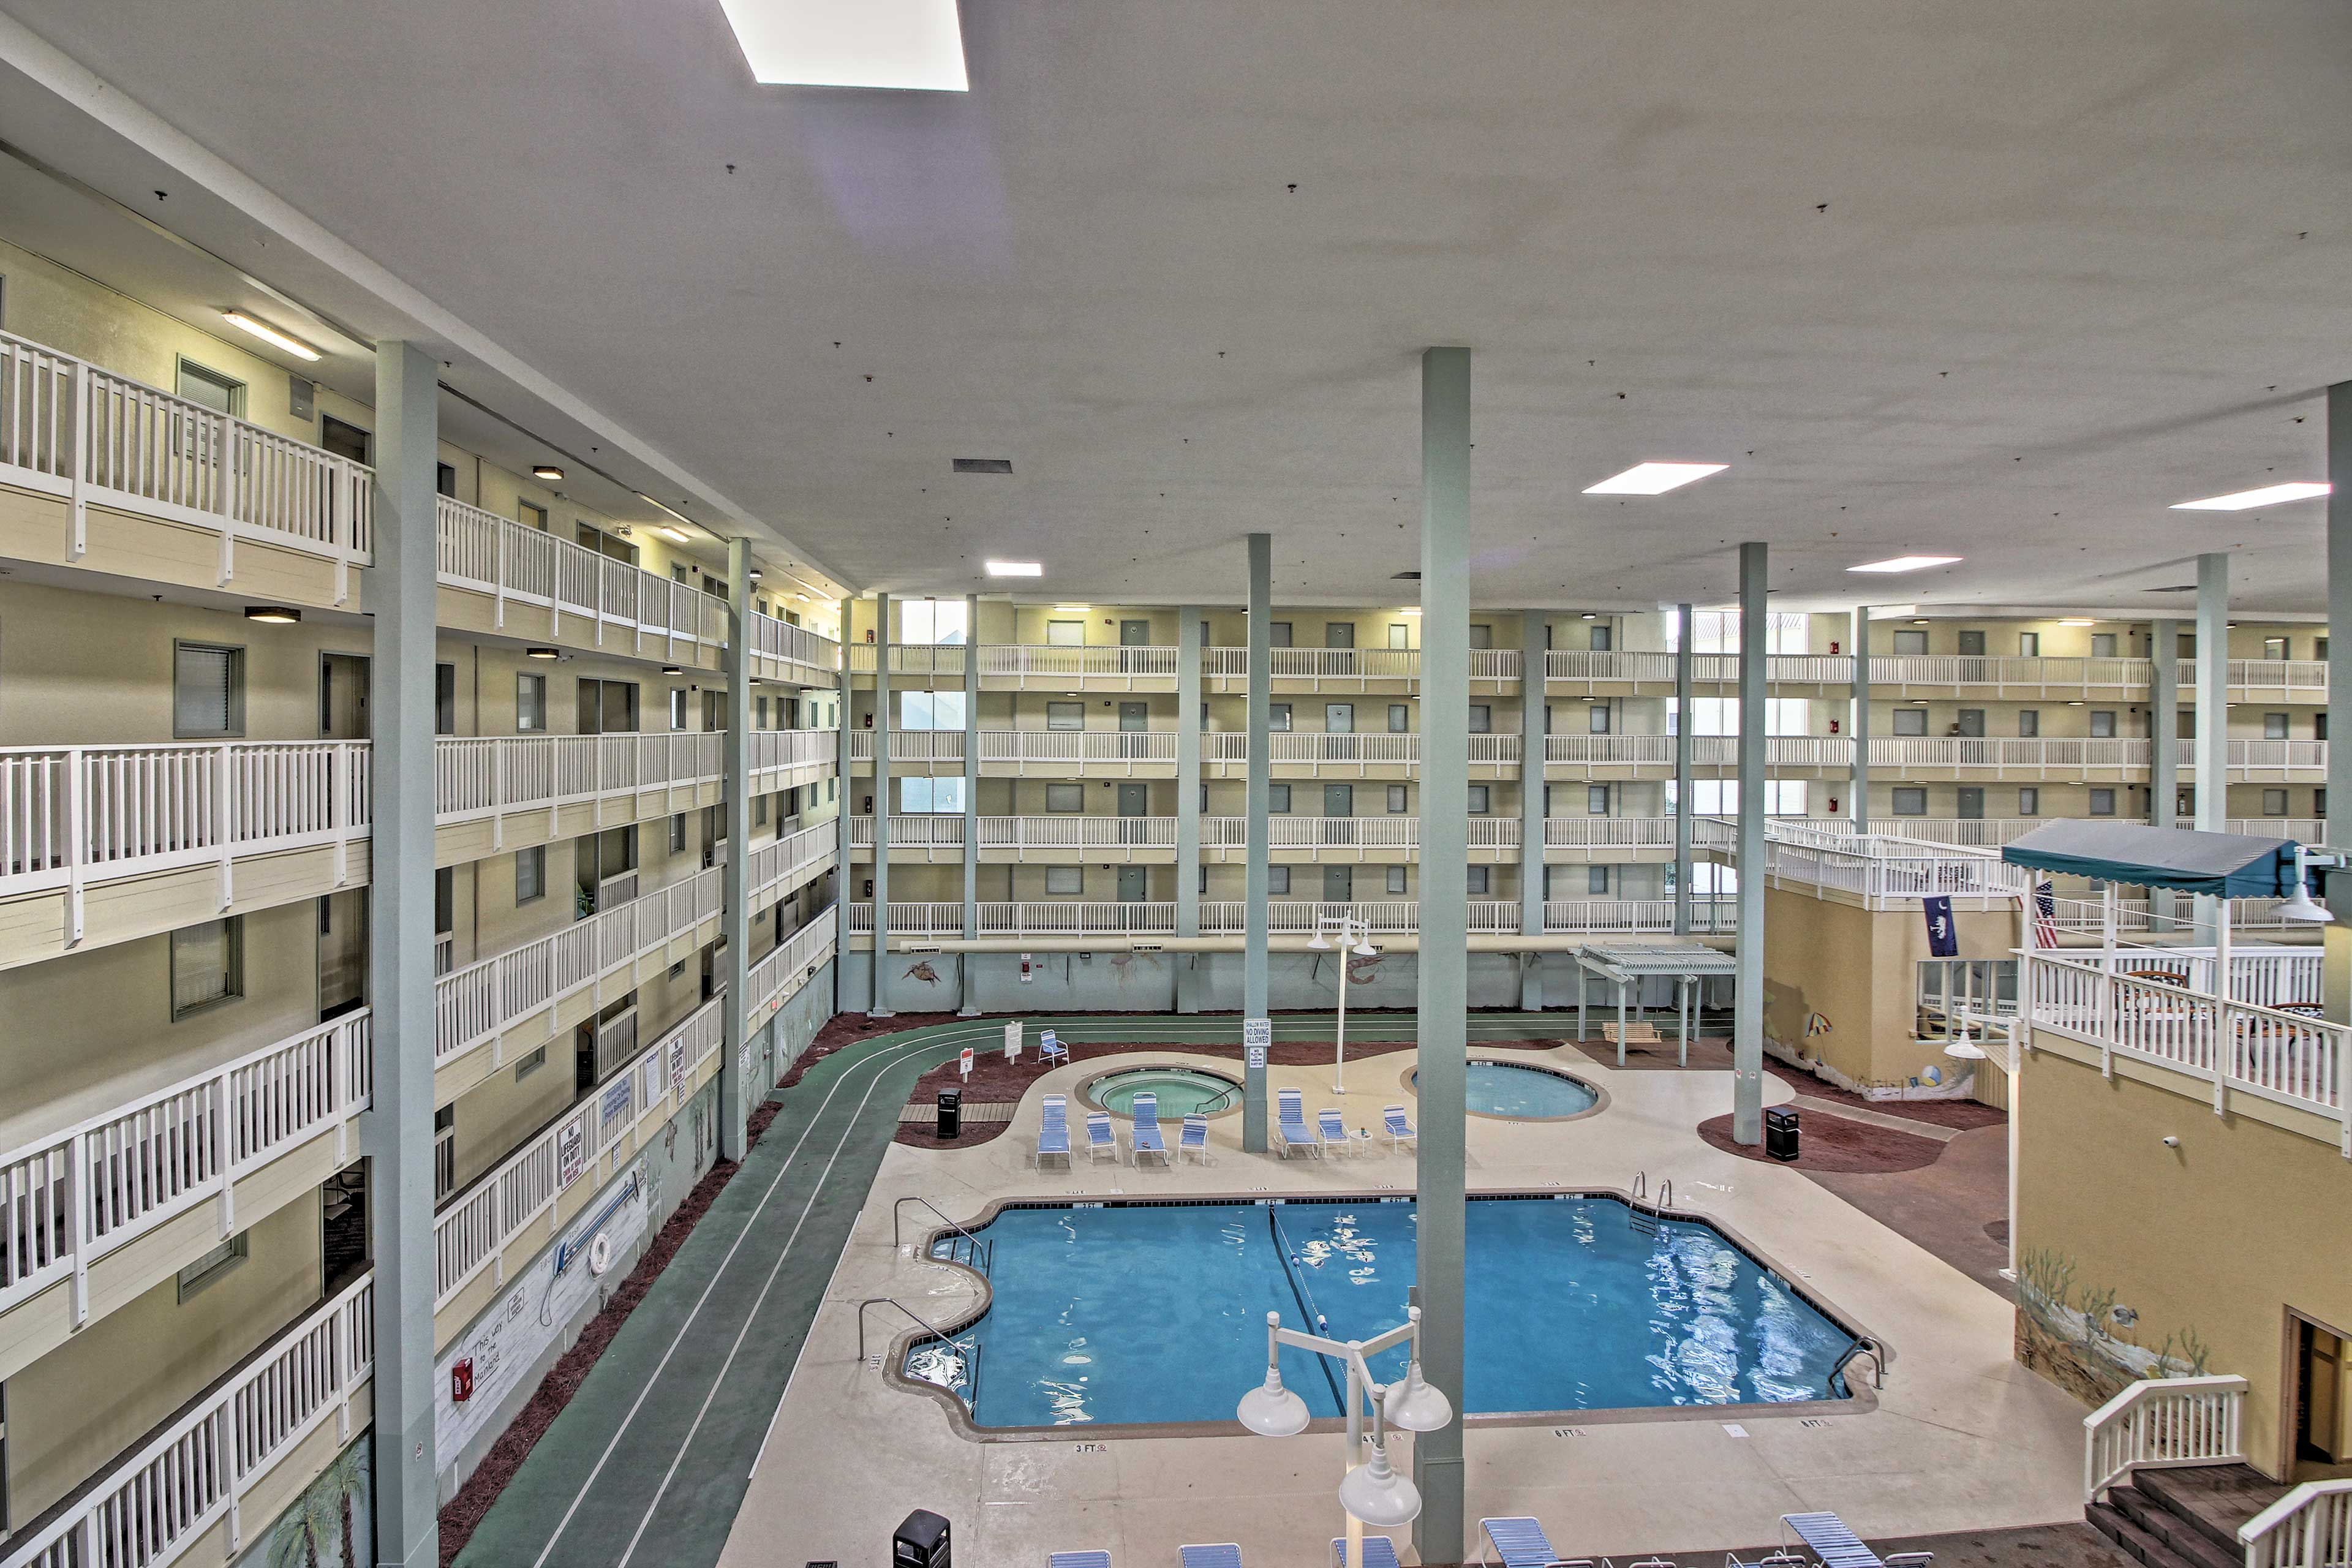 The condo provides access to numerous indoor and outdoor pools.